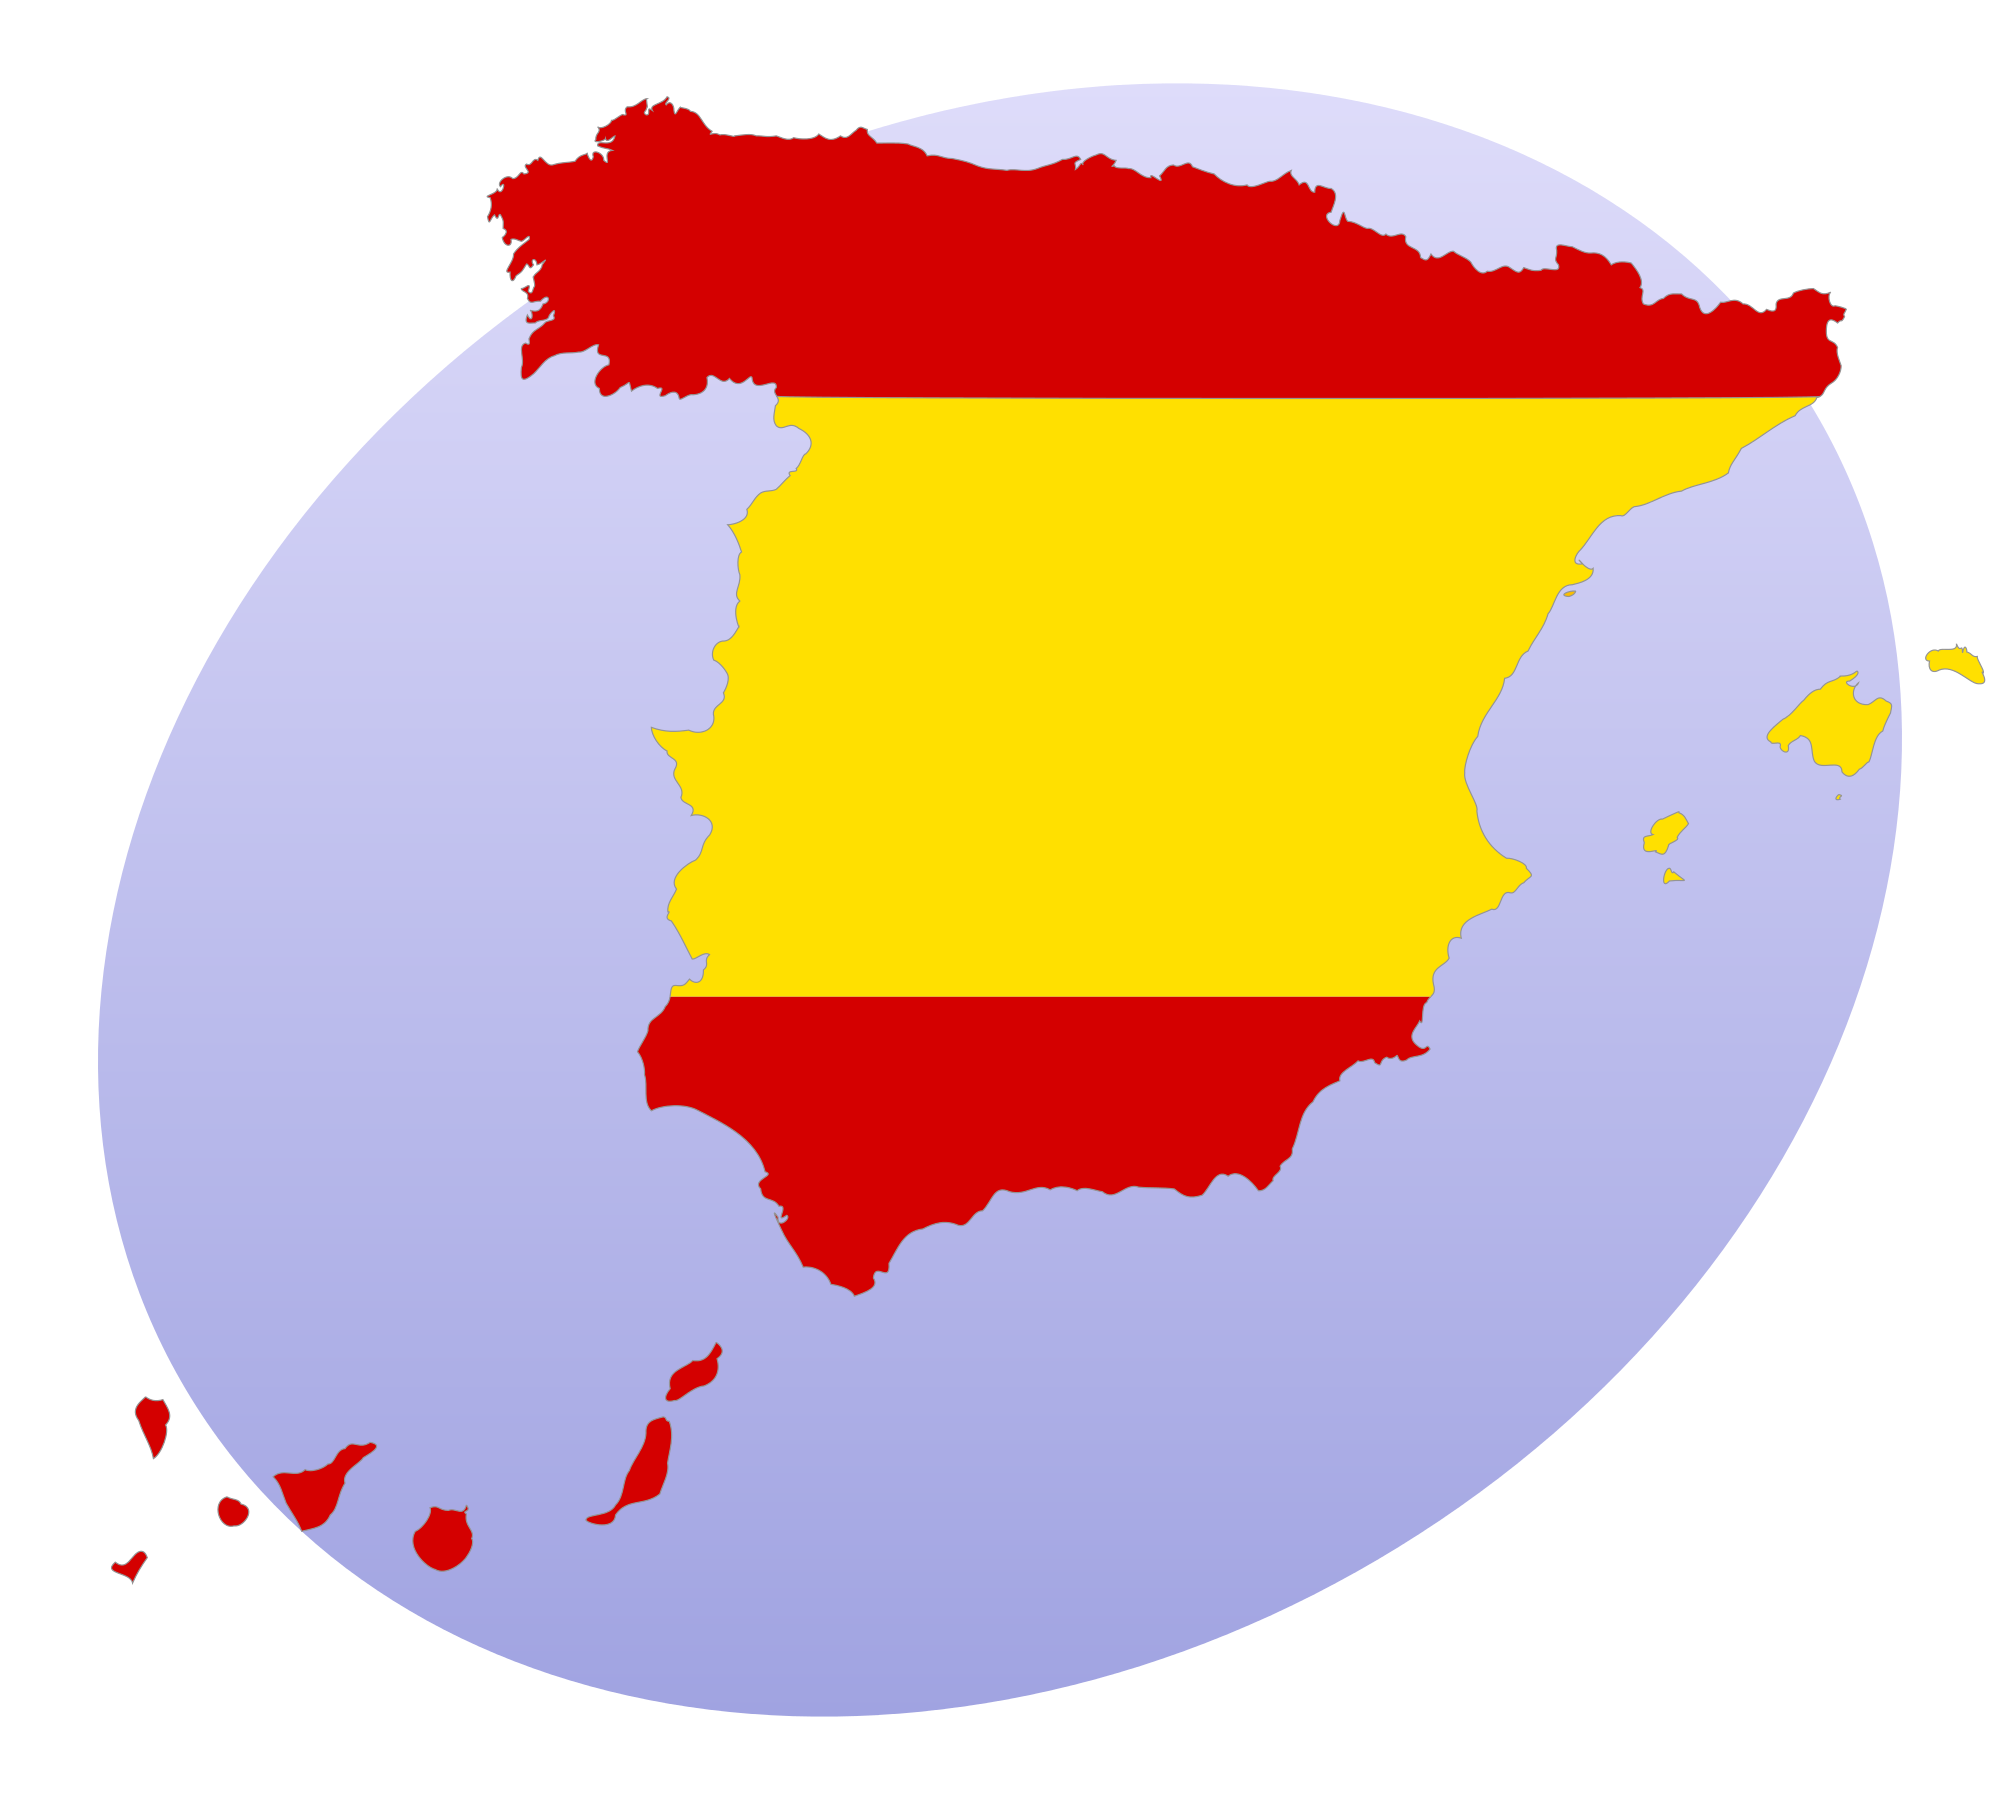 2000x1800 Filespain Portal Silhouette And Flag.svg